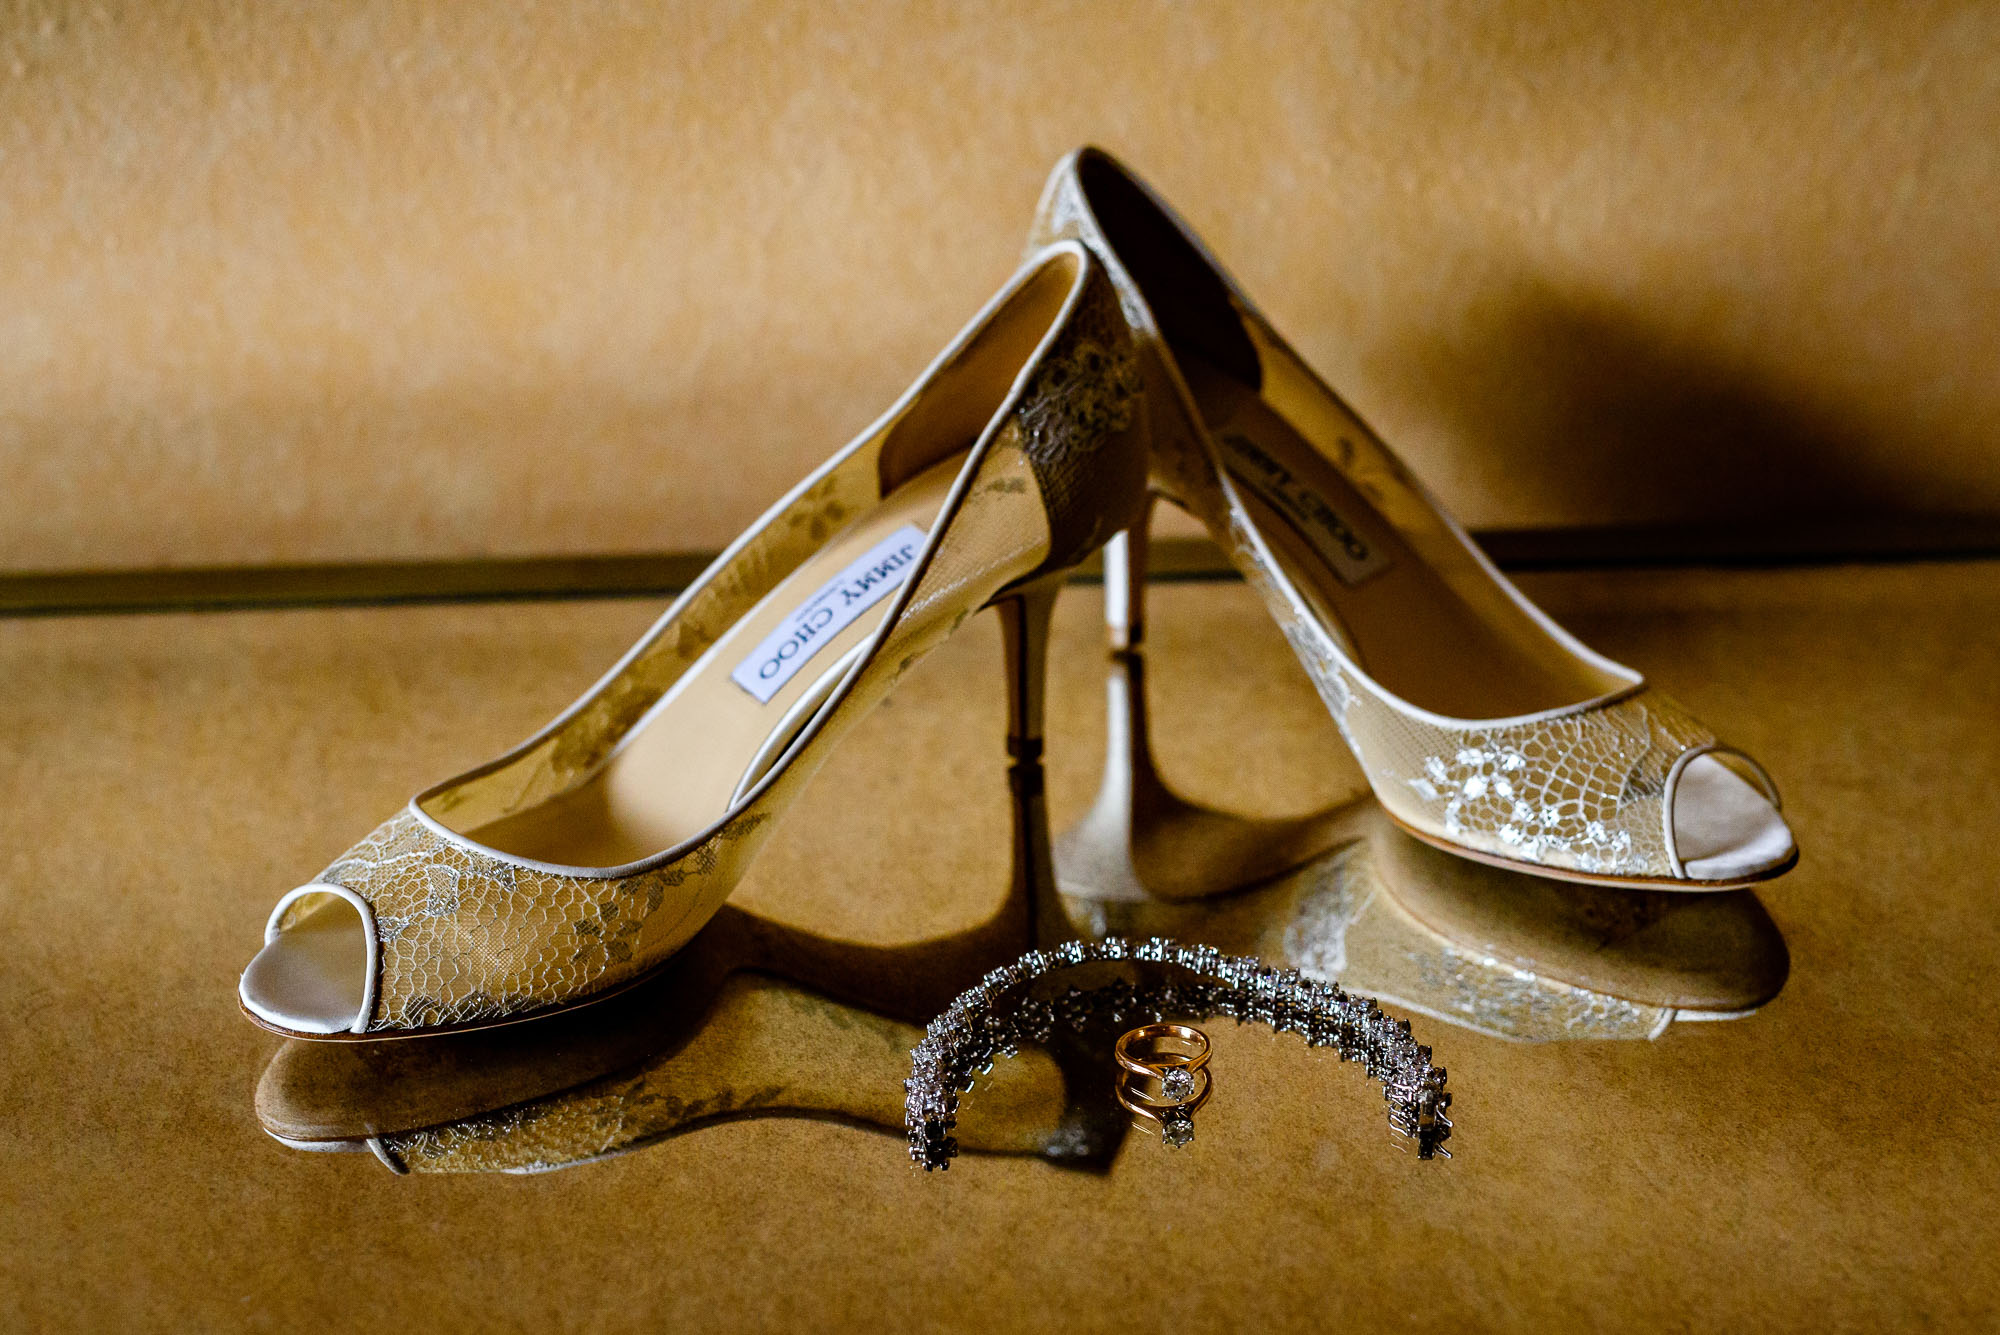 The Sephardic Temple wedding shoes